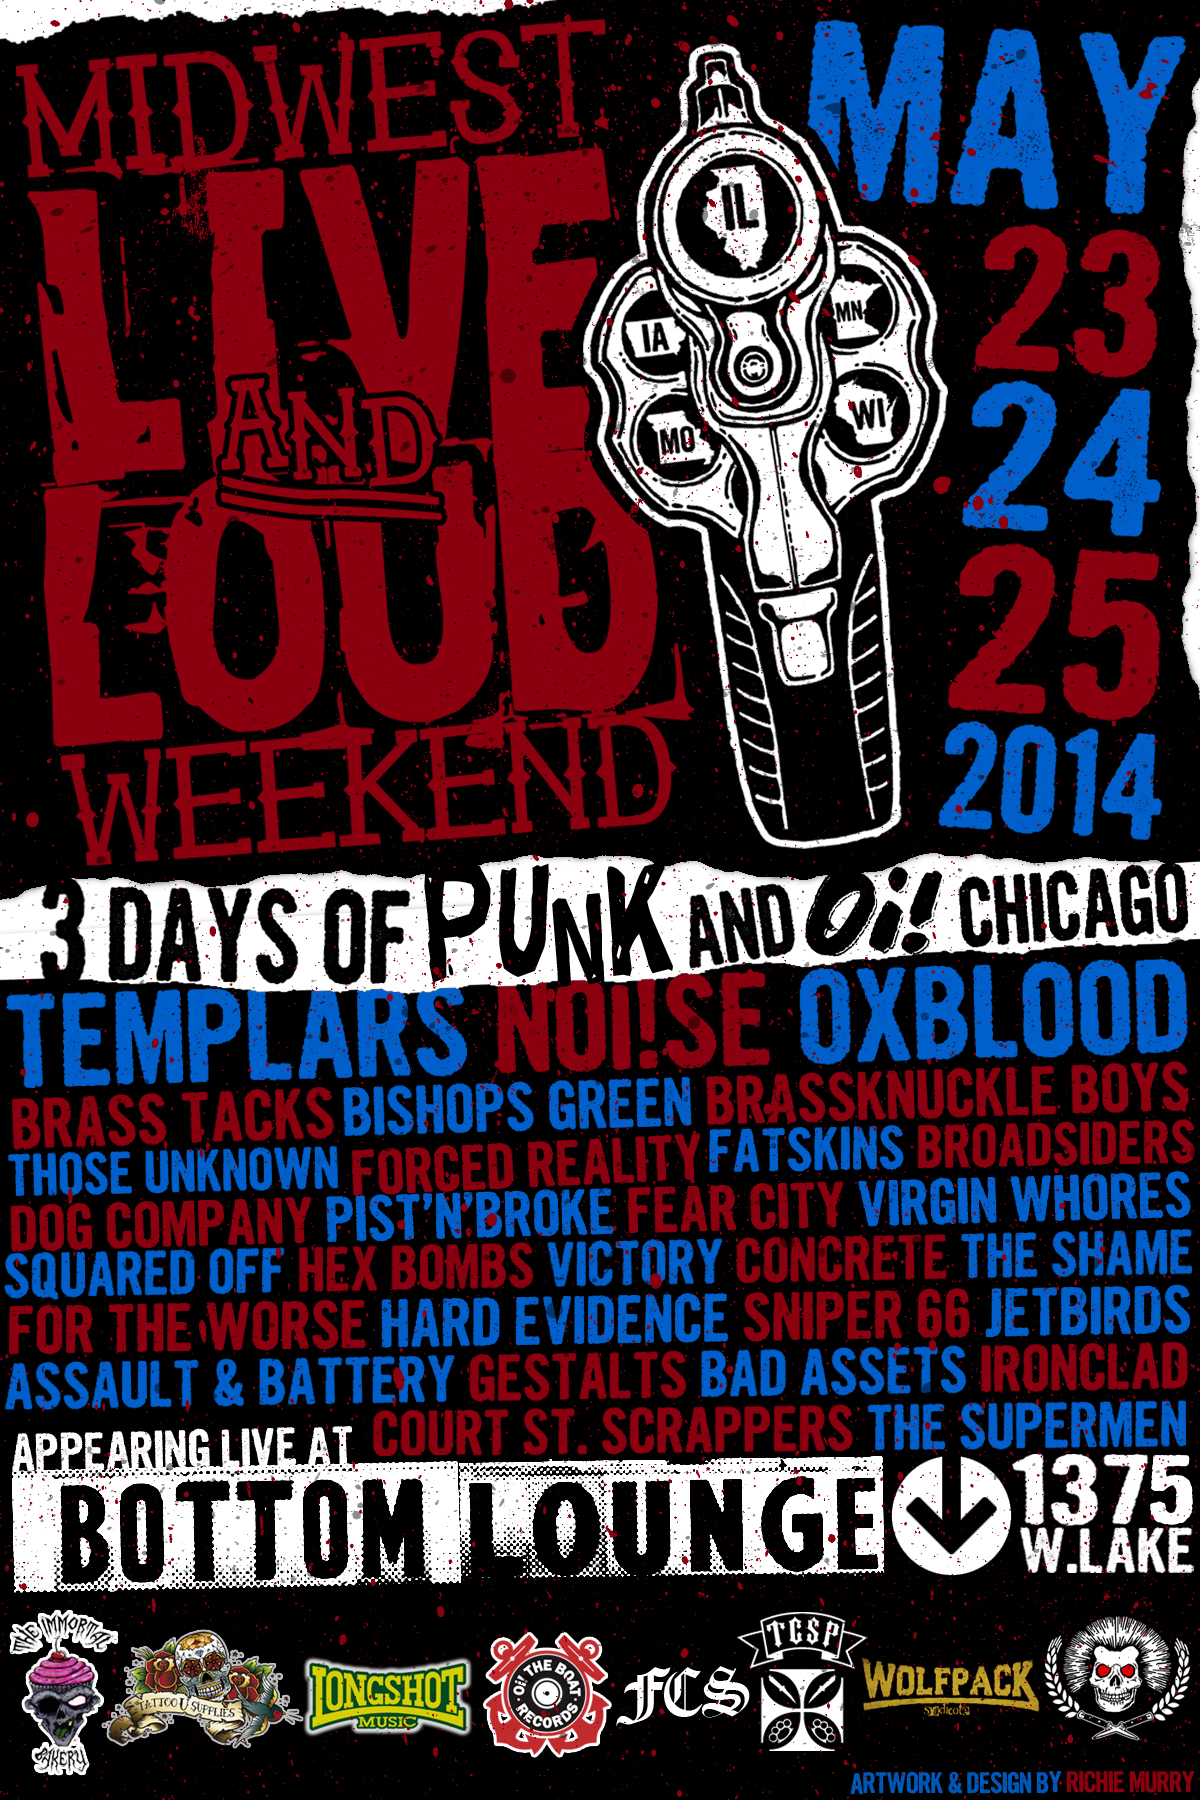 MIDWEST LIVE & LOUD WEEKEND